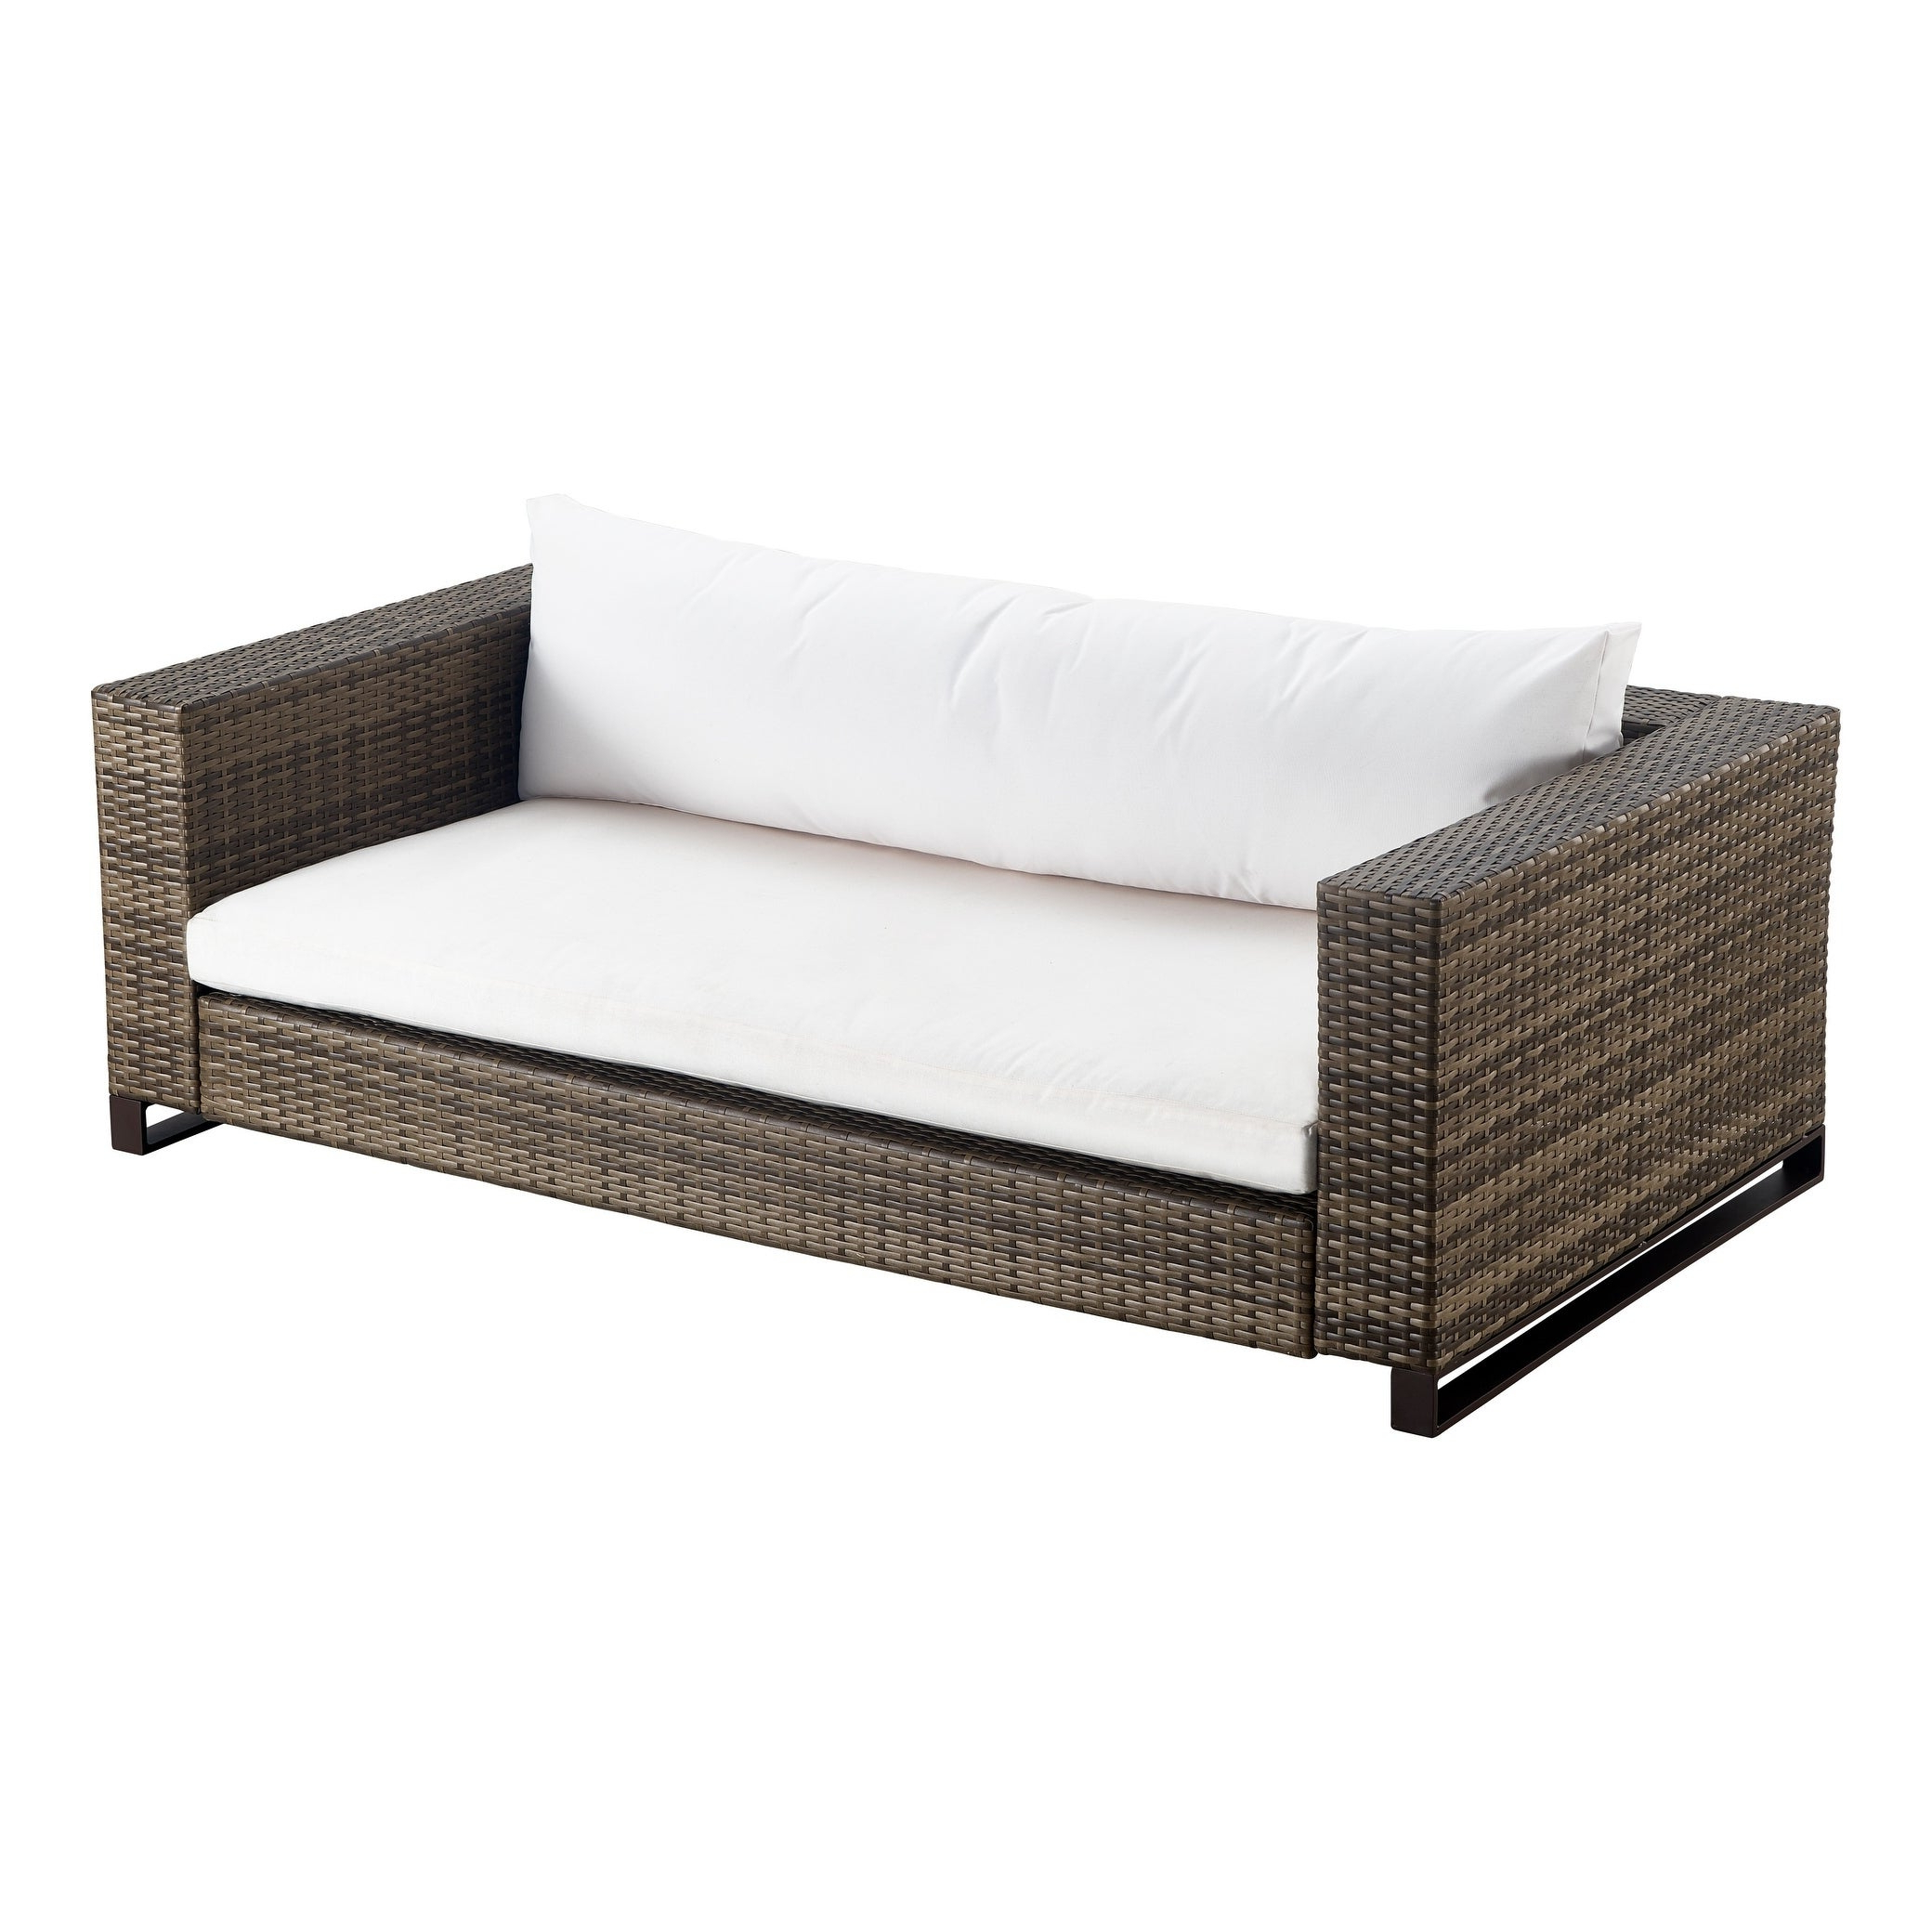 Tommy Hilfiger Oceanside Outdoor Loveseat, Gray Wicker For Popular Oceanside Outdoor Wicker Loveseats With Cushions (View 24 of 25)